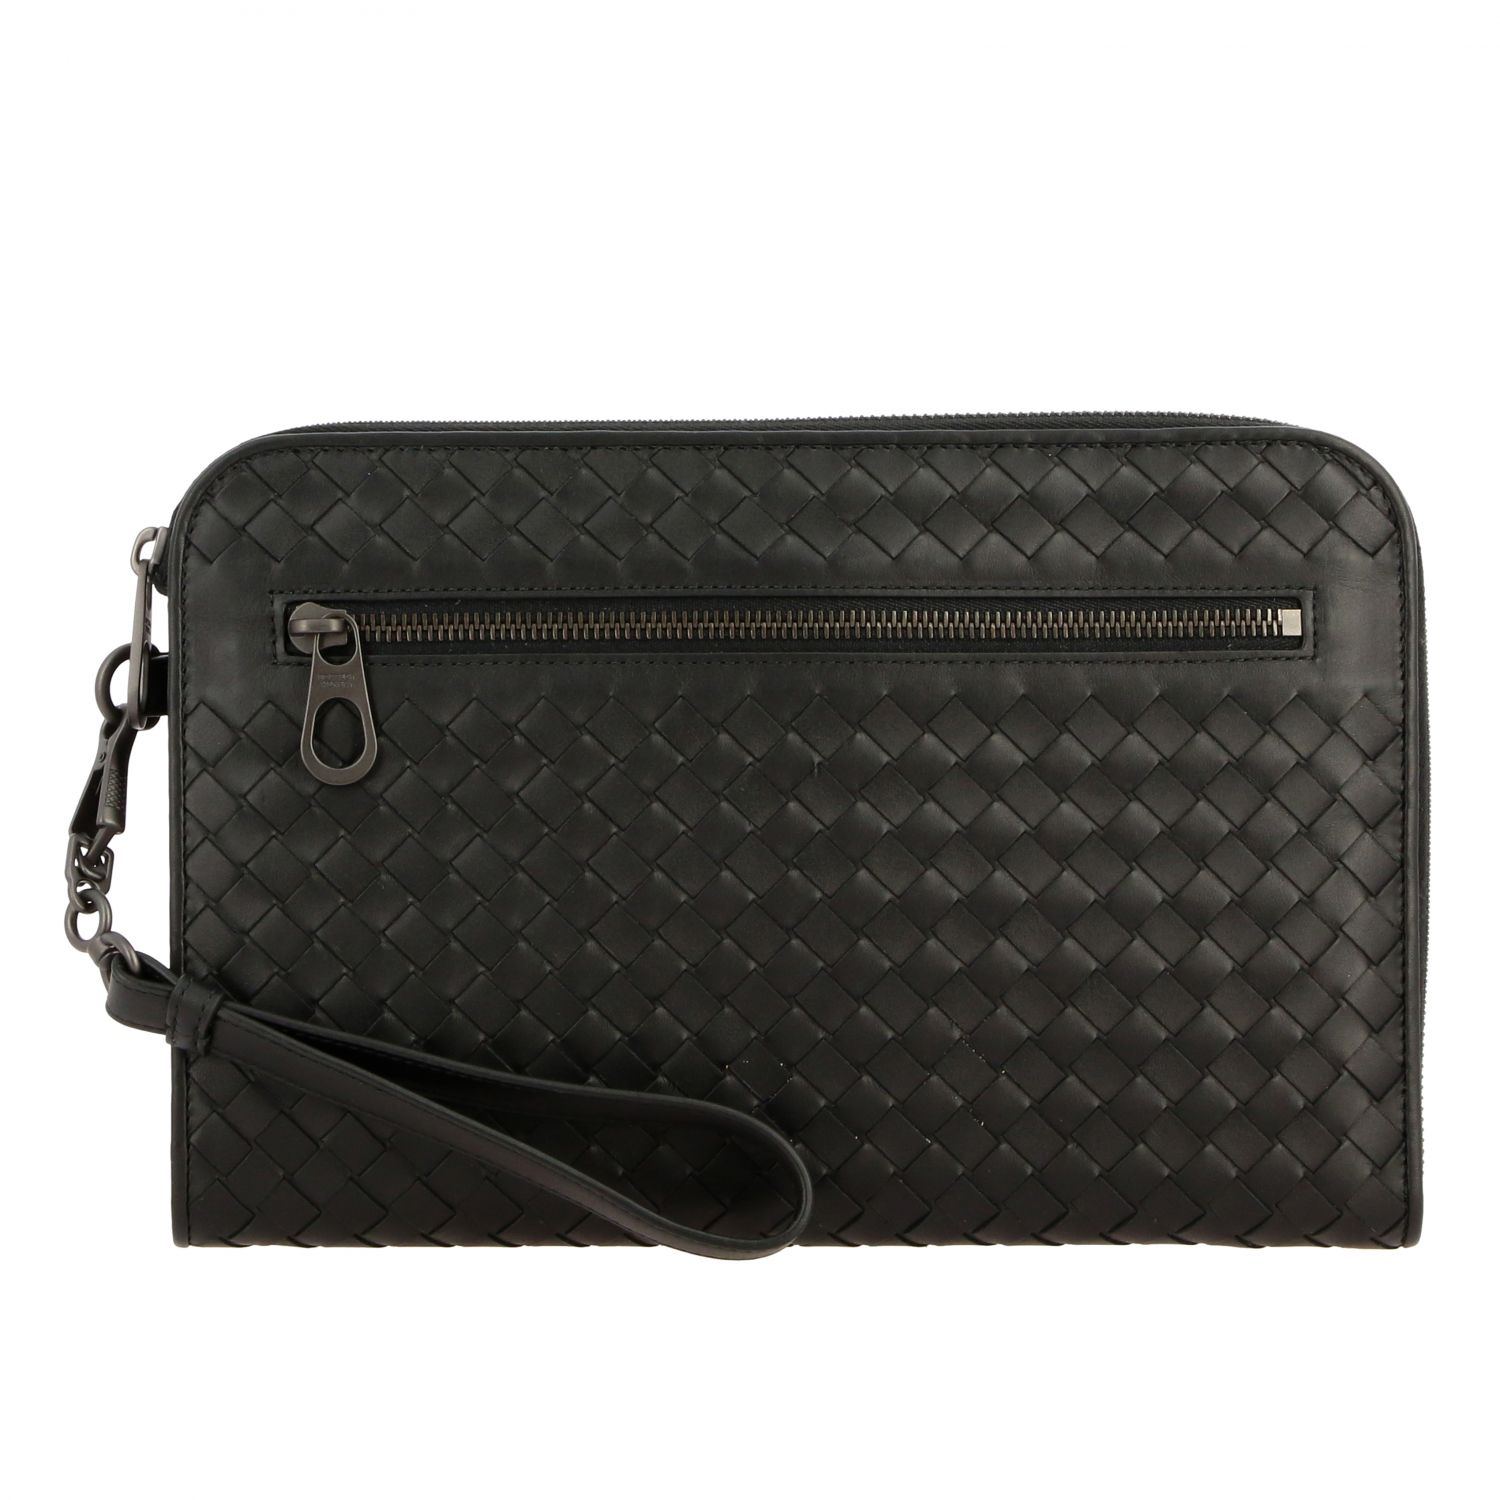 Clutch Bottega Veneta in pelle intrecciata nero 1